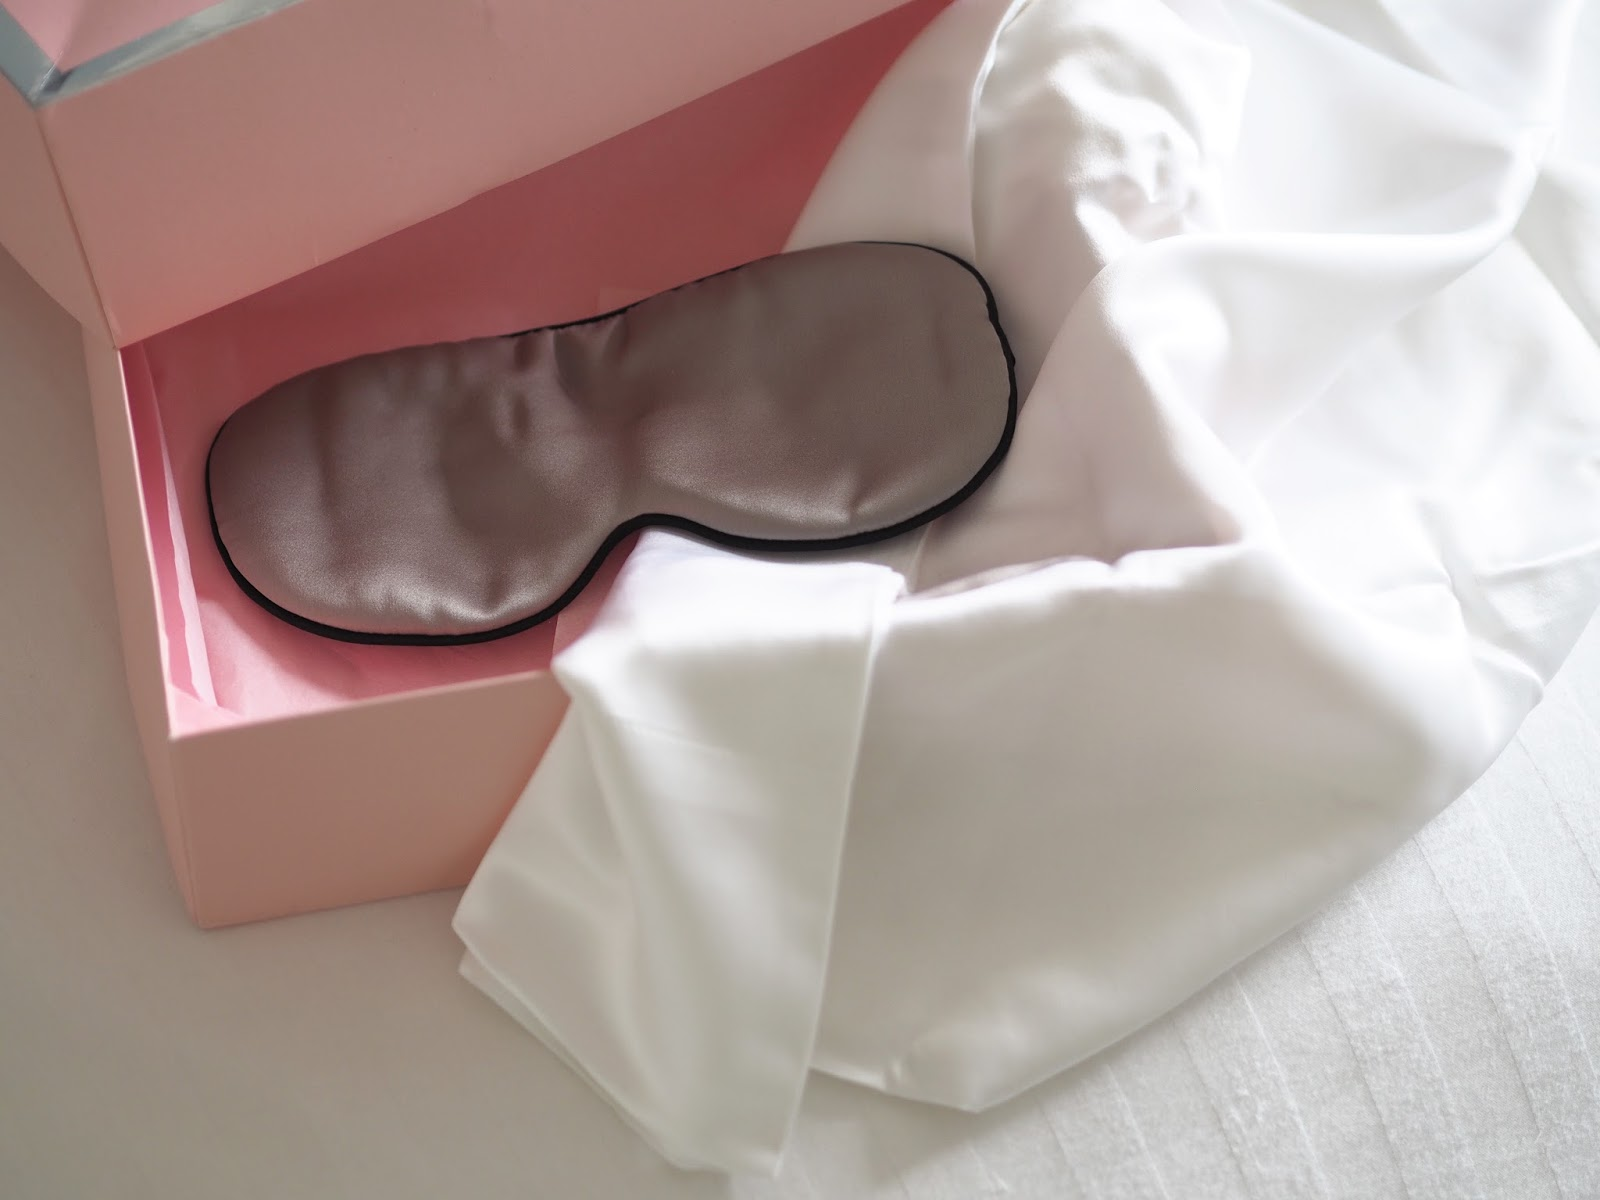 Silk pillowcase and large silver eye mask from Chichouz for better skin and hair \ beauty \ skincare \ Priceless Life of Mine \ 40 plus lifestyle blog